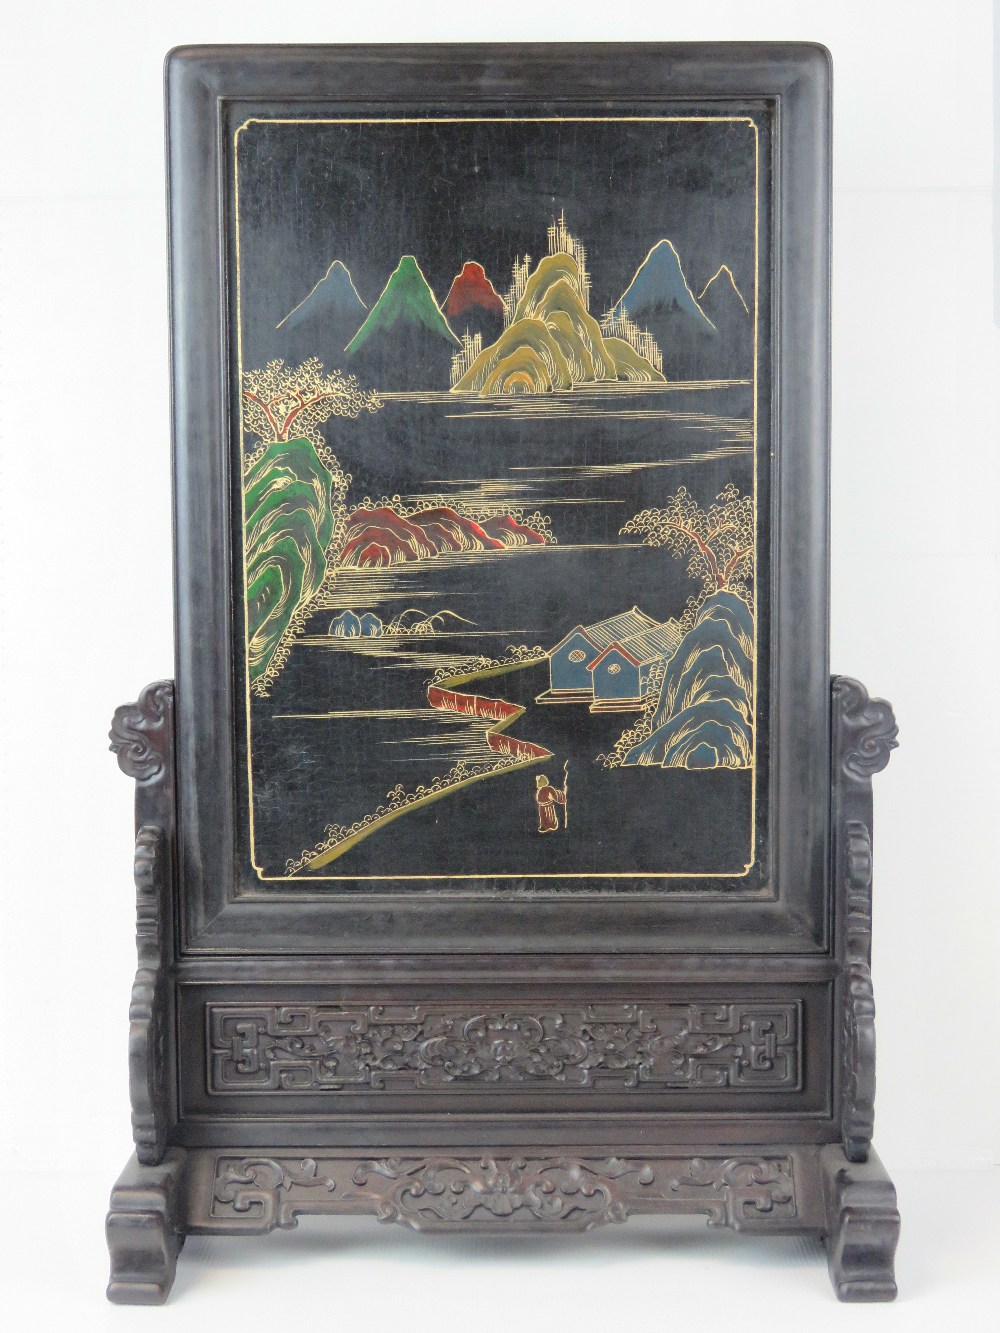 Lot 589 - A superb quality 19th century Chinese ha